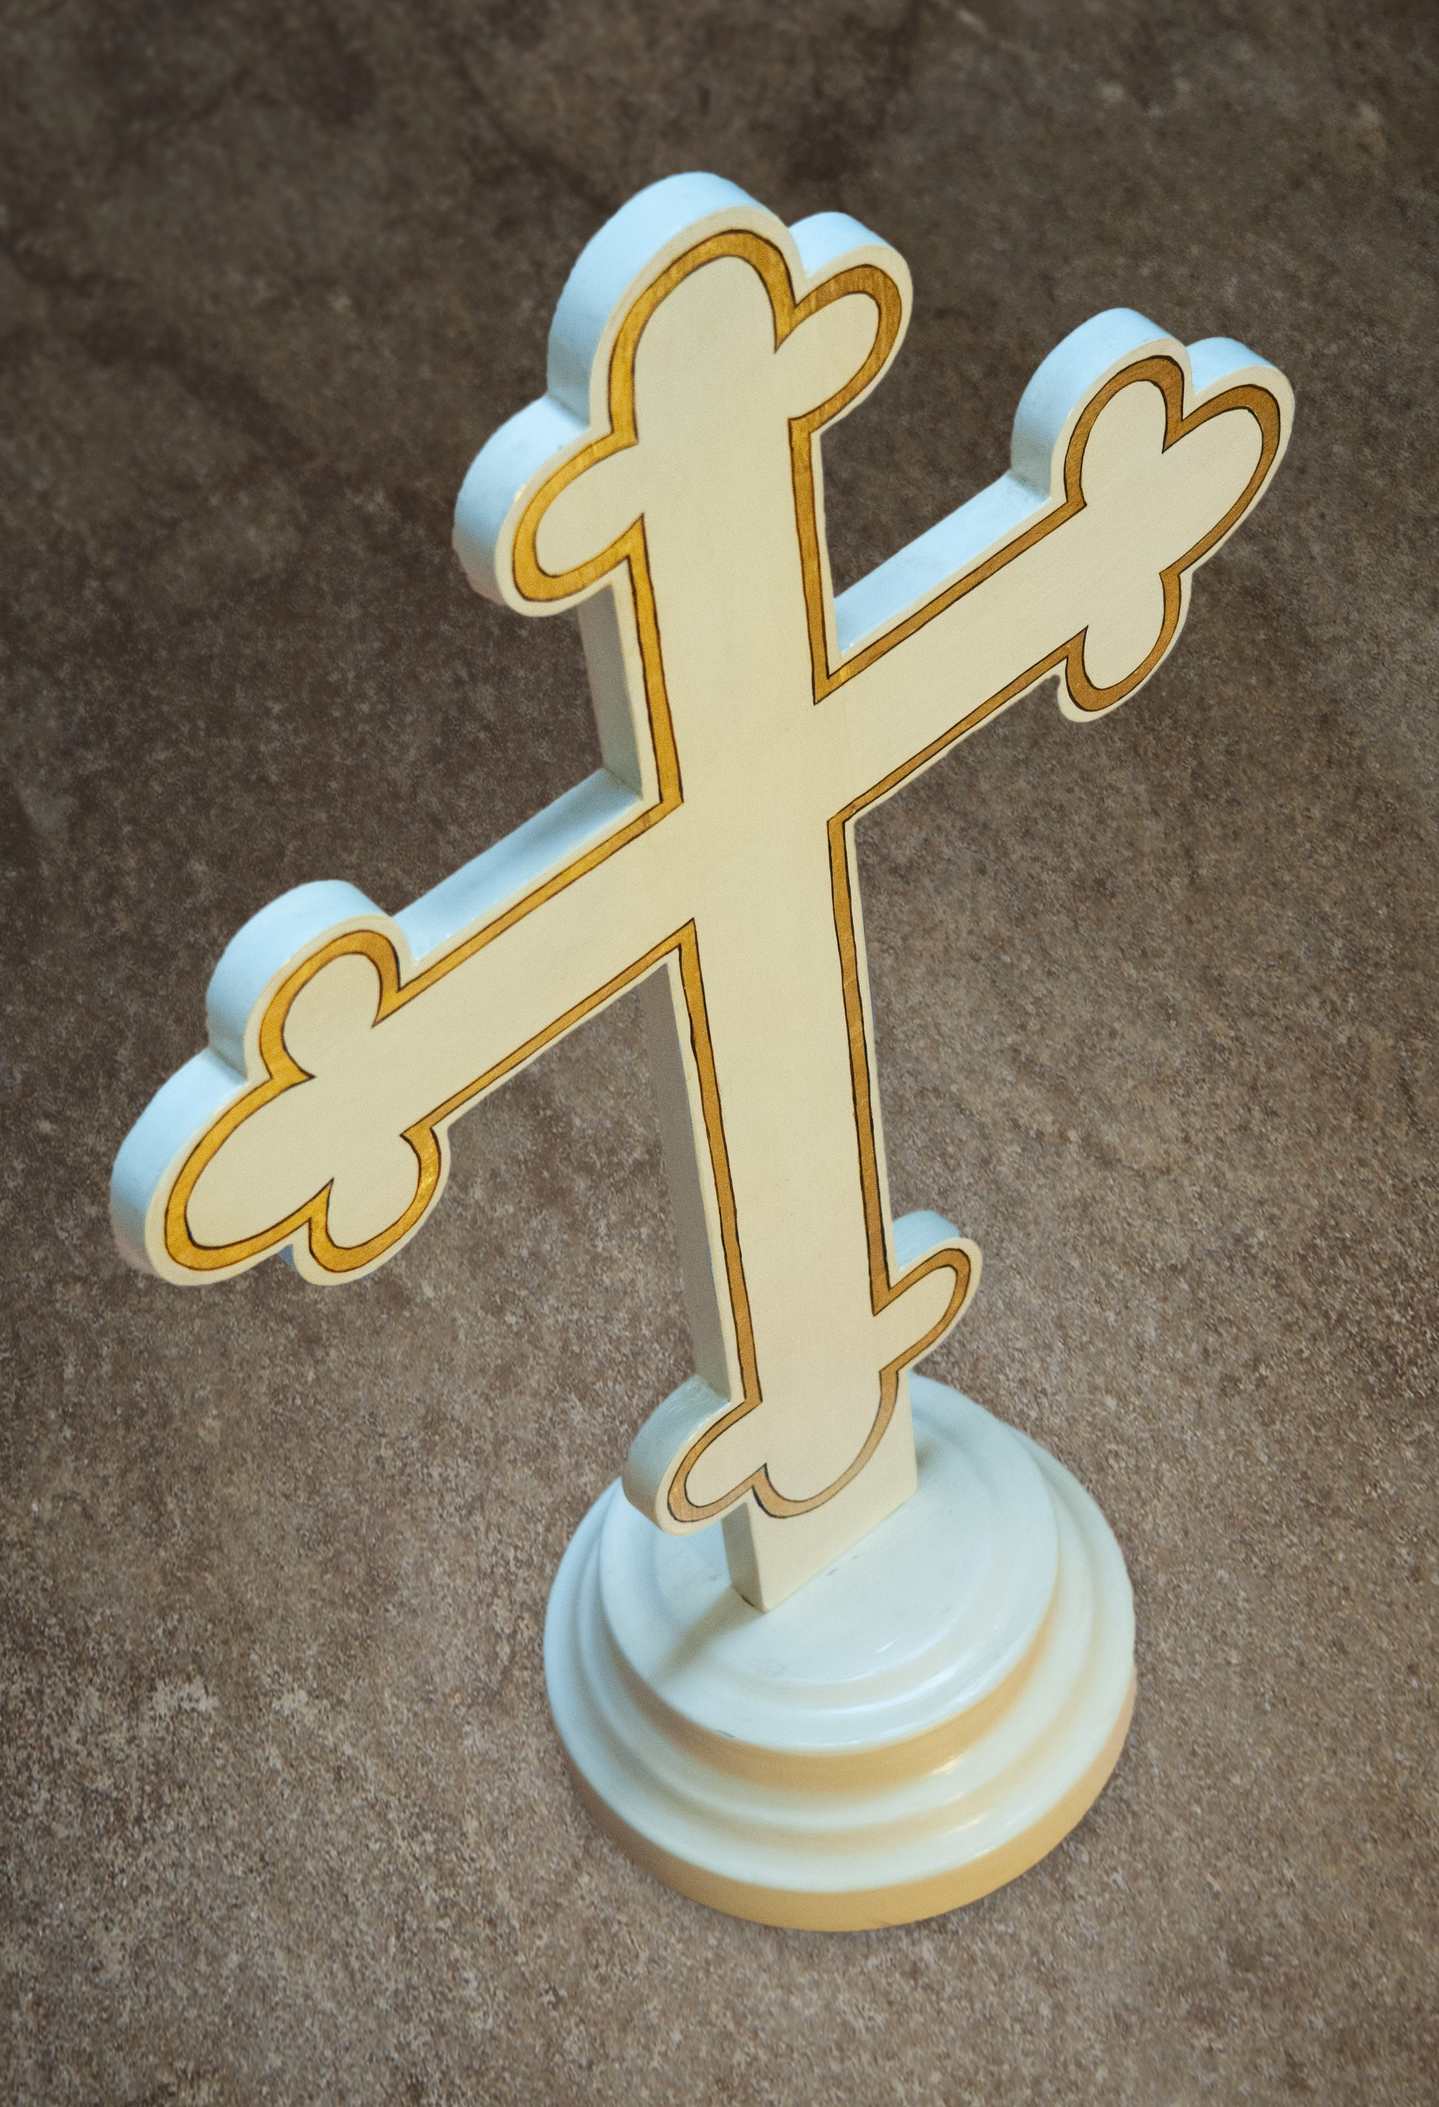 A white cross used in traditional Orthodox burial services.